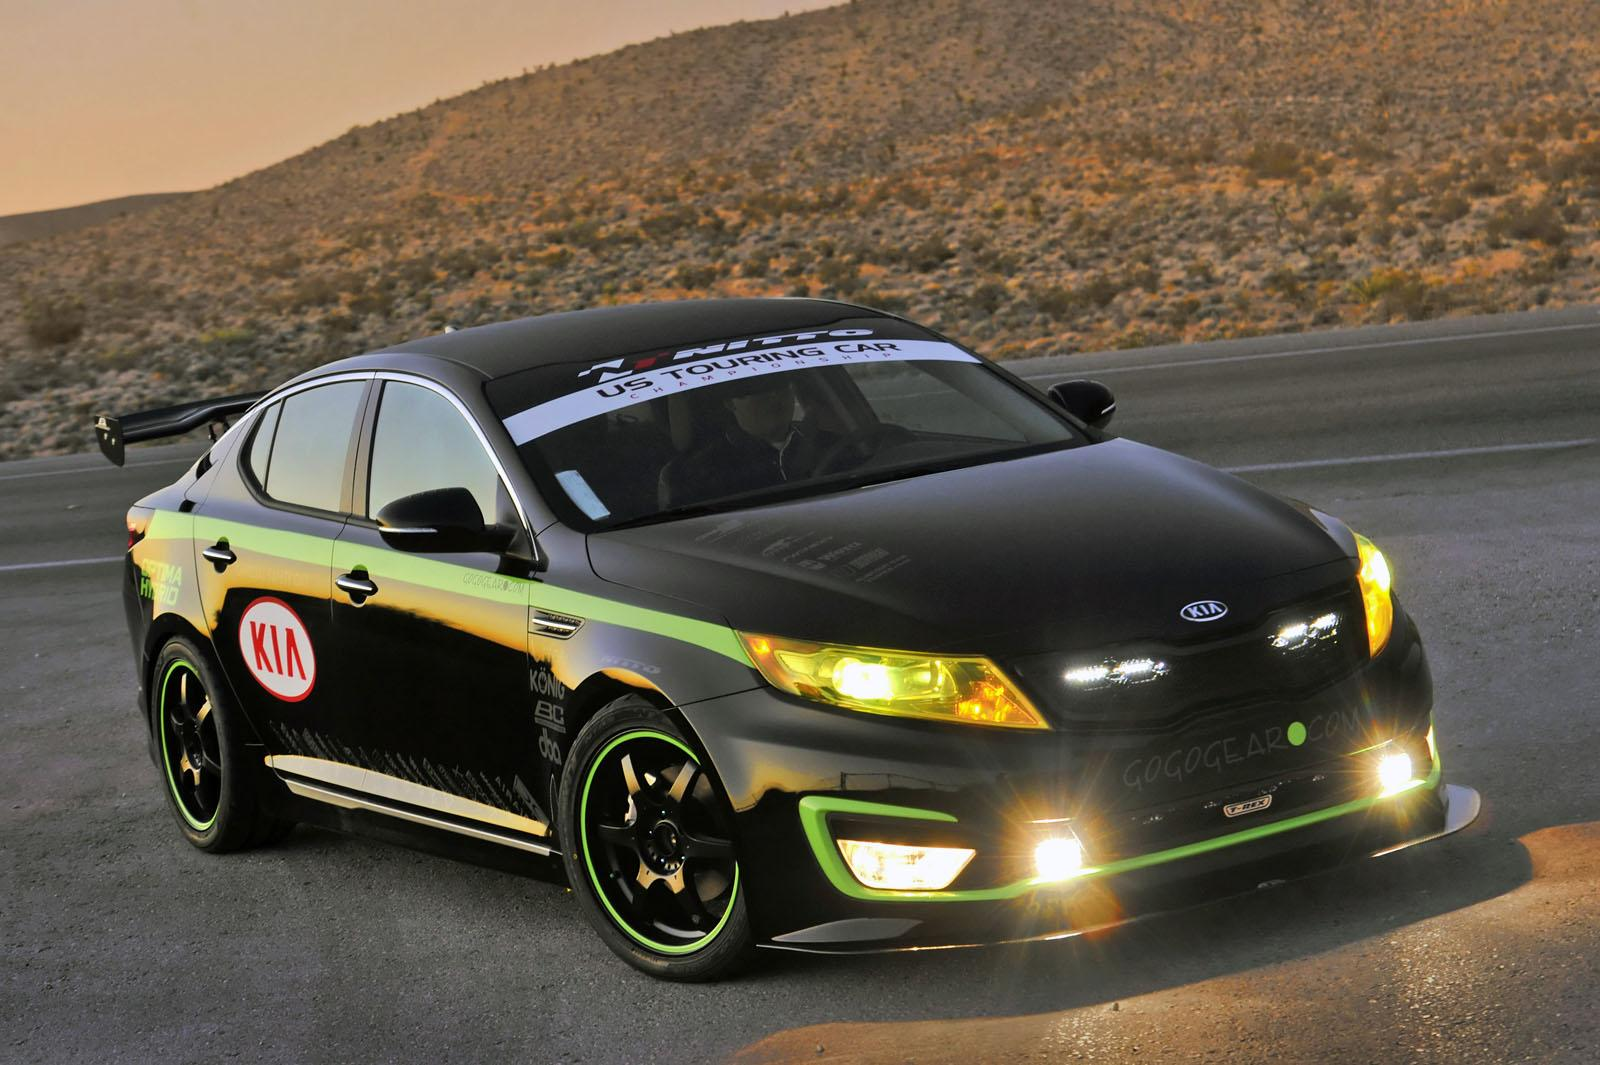 2012 kia ustcc optima hybrid pace car sport cars and motorcycle news. Black Bedroom Furniture Sets. Home Design Ideas